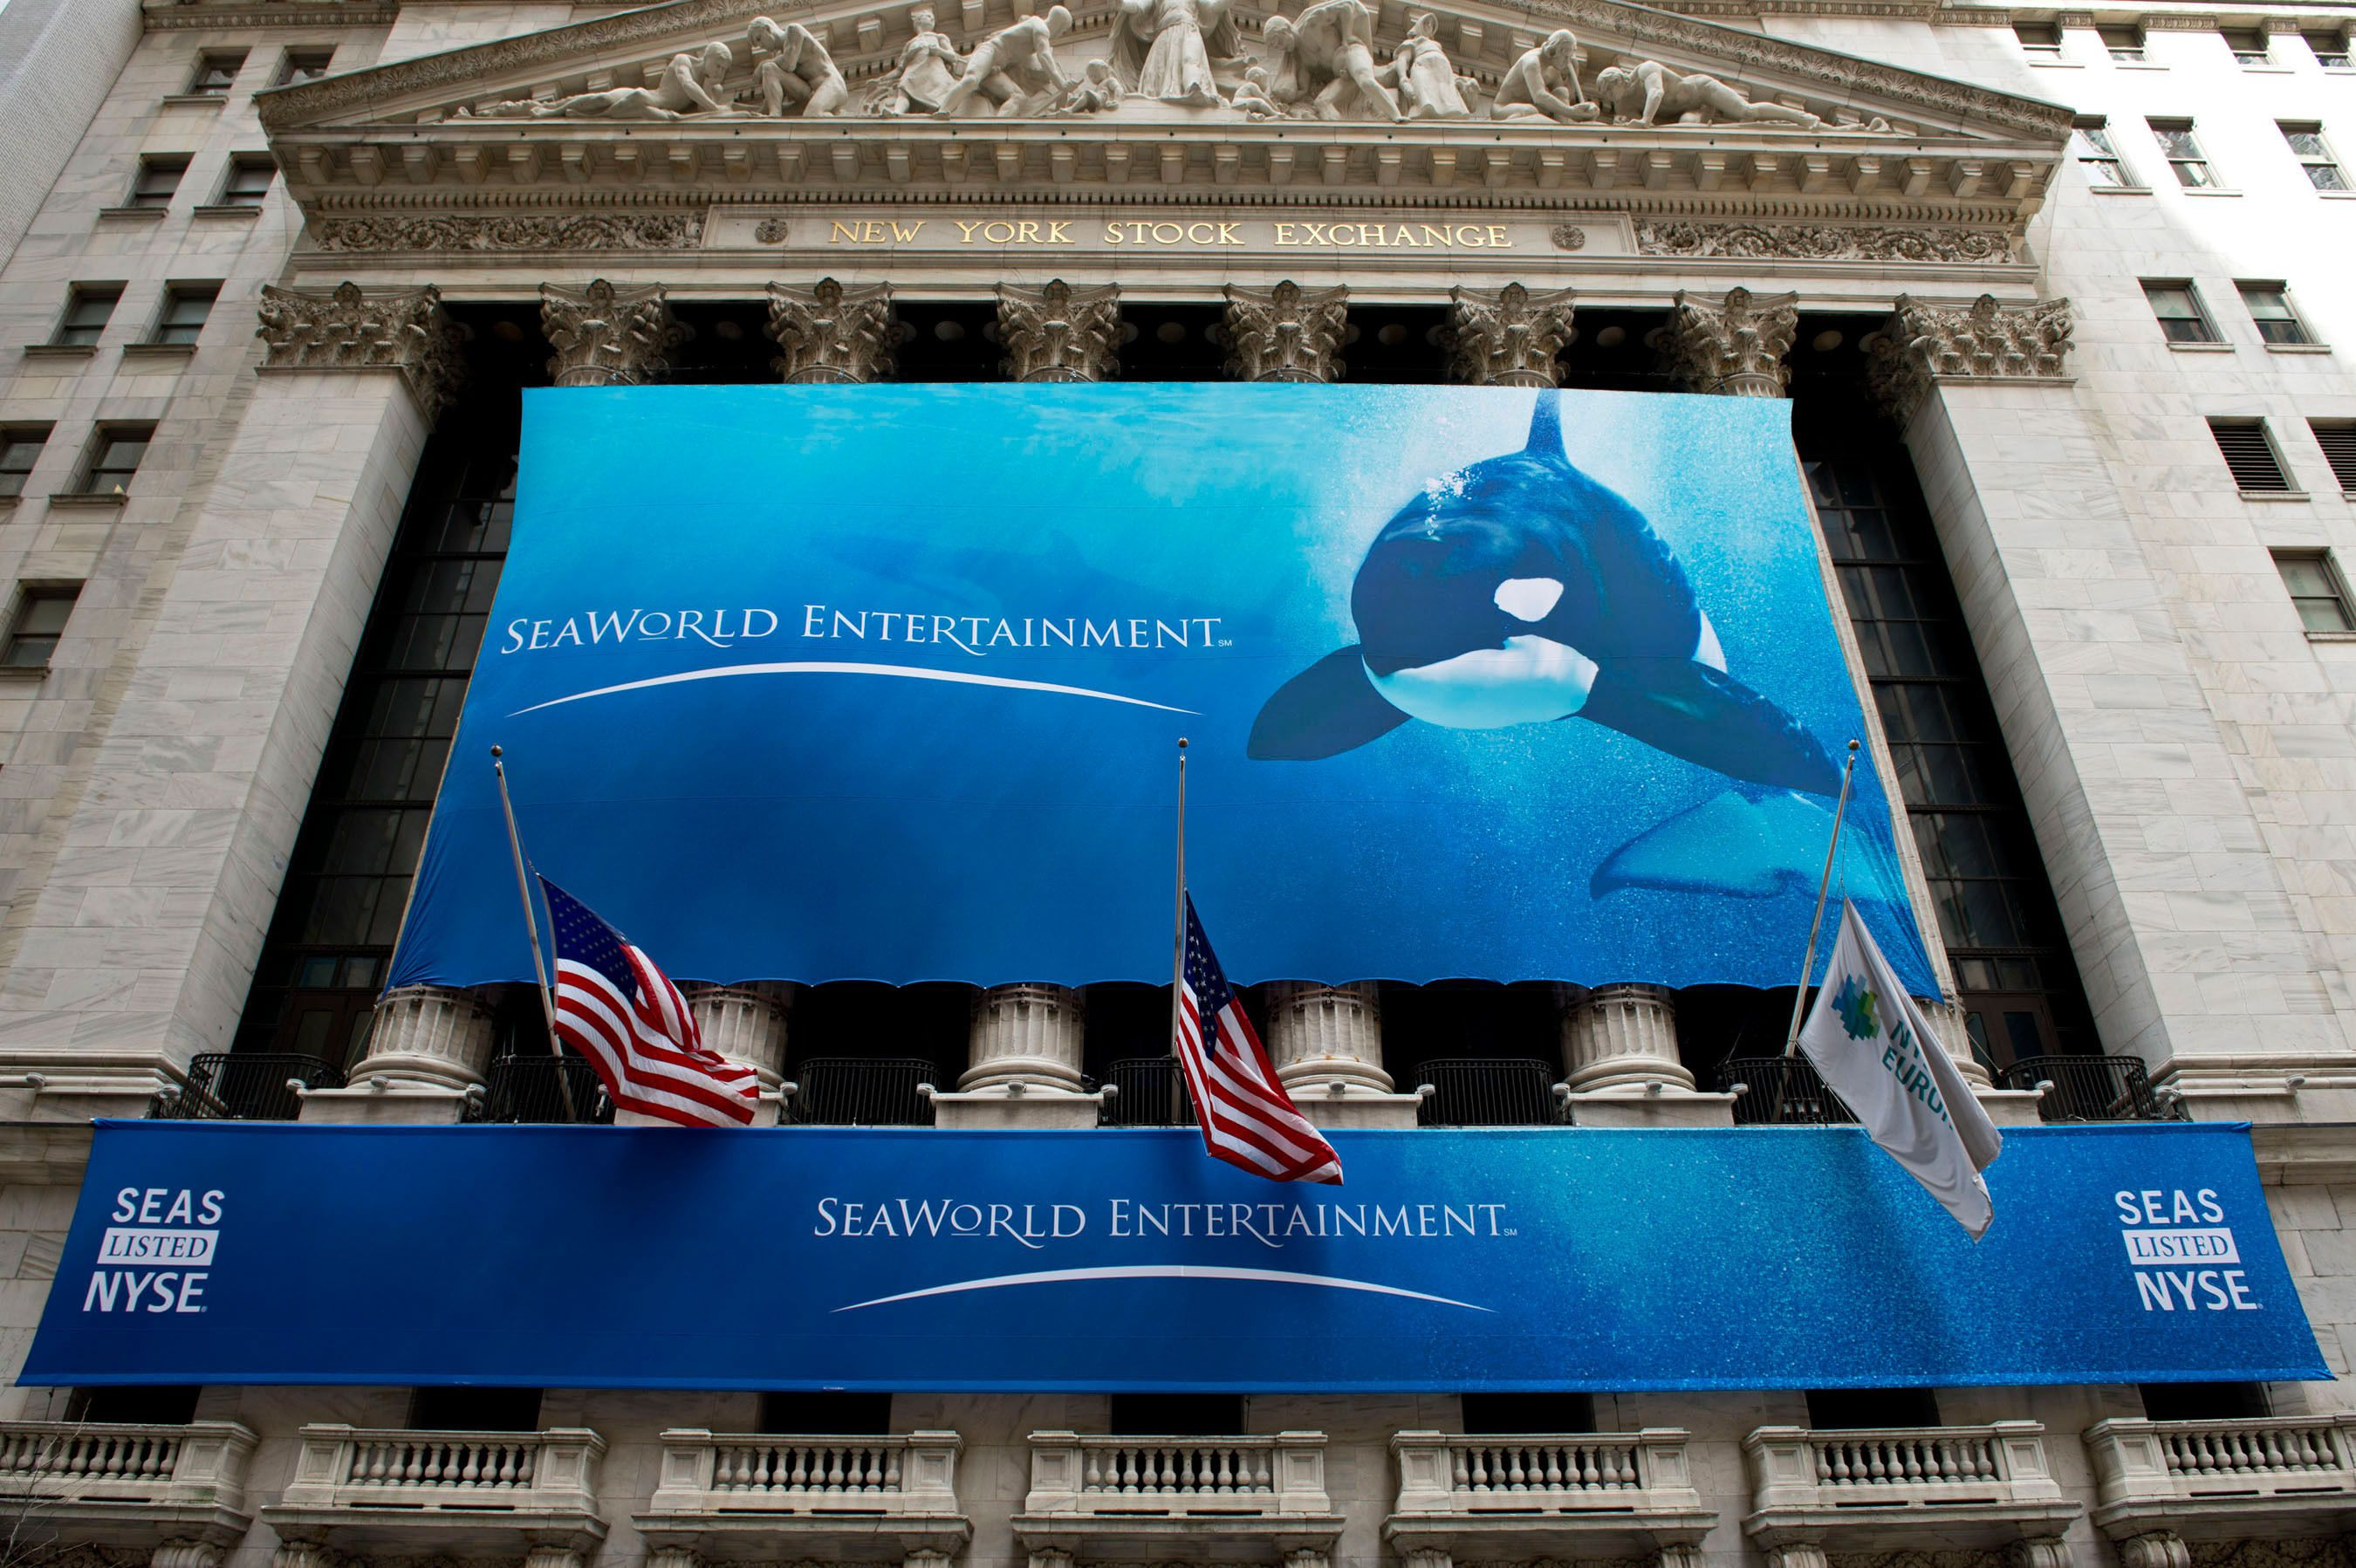 Penguins on Wall Street: SeaWorld Entertainment, Inc. Opened for Trade Today Orlando, Fla.-based SeaWorld Entertainment, Inc., a leading theme park and entertainment company, opened for trading today on the New York Stock Exchange under the ticker symbol SEAS after its initial public offering.  CEO Jim Atchison and the company's leaders rang the NYSE Opening Bell(R) and brought the experience of its theme parks to the NYSE as SeaWorld performers, penguins, otters and a lemur paraded across the trading floor.  (PRNewsFoto/SeaWorld Entertainment, Inc.) THIS CONTENT IS PROVIDED BY PRNewsfoto and is for EDITORIAL USE ONLY**